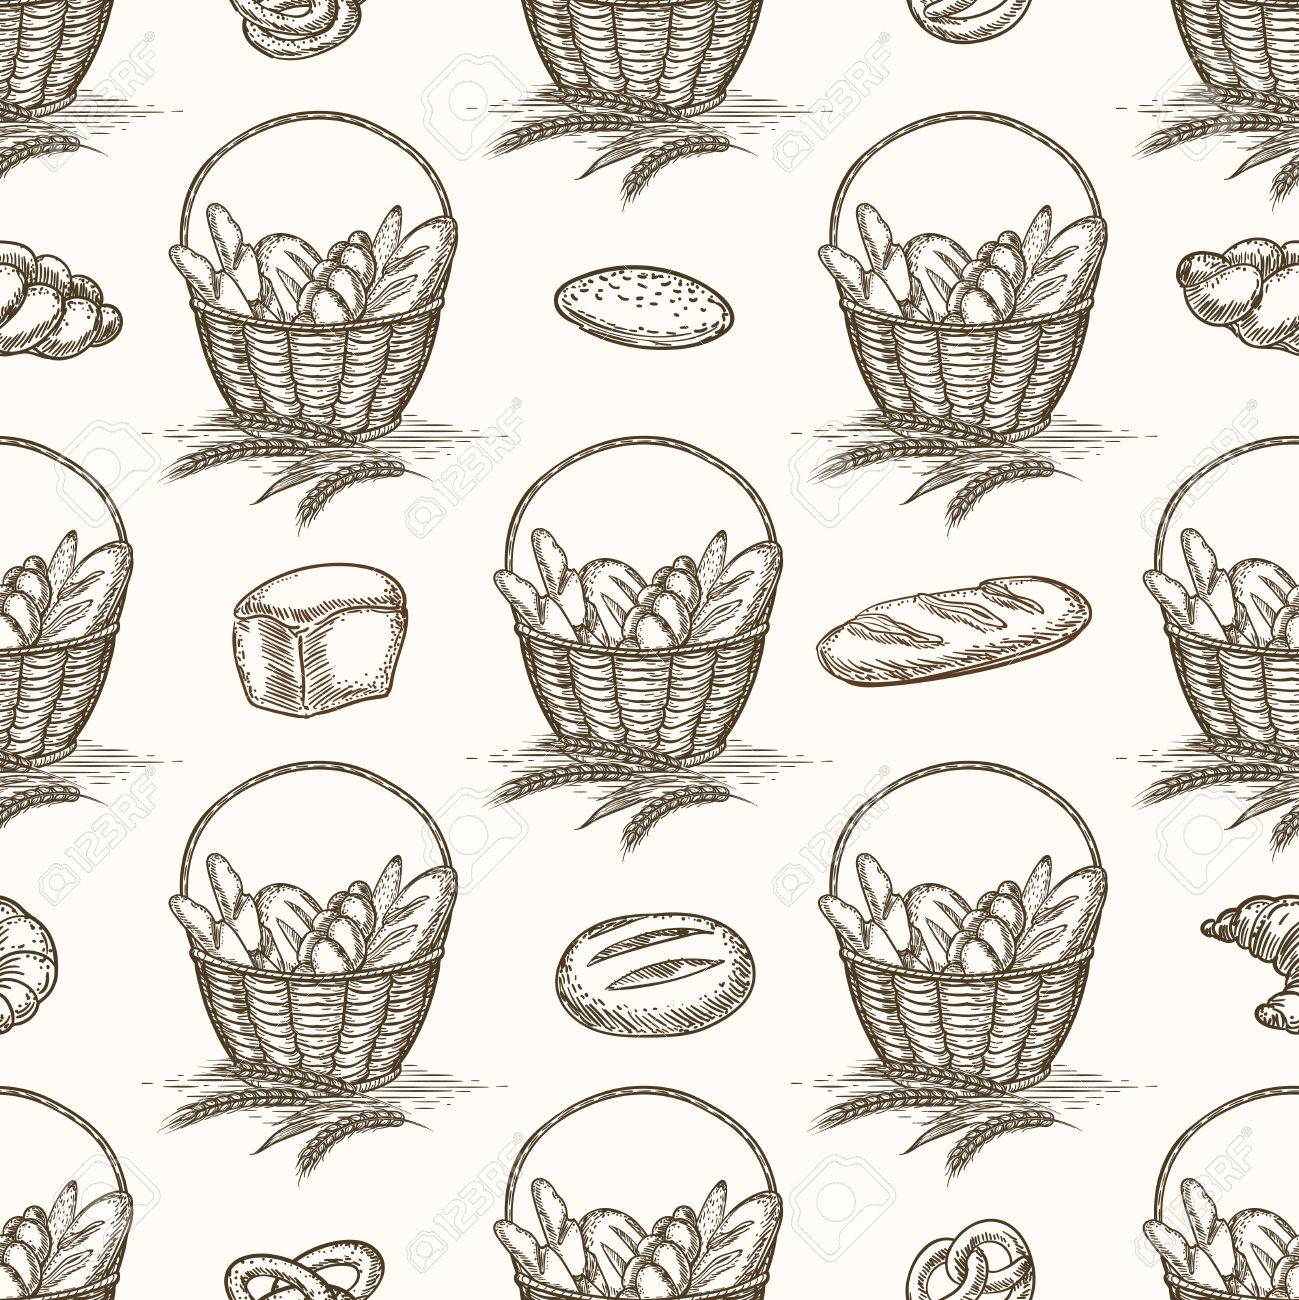 1299x1300 Baked Goods Seamless Pattern. Vector Bread Basket And Buns